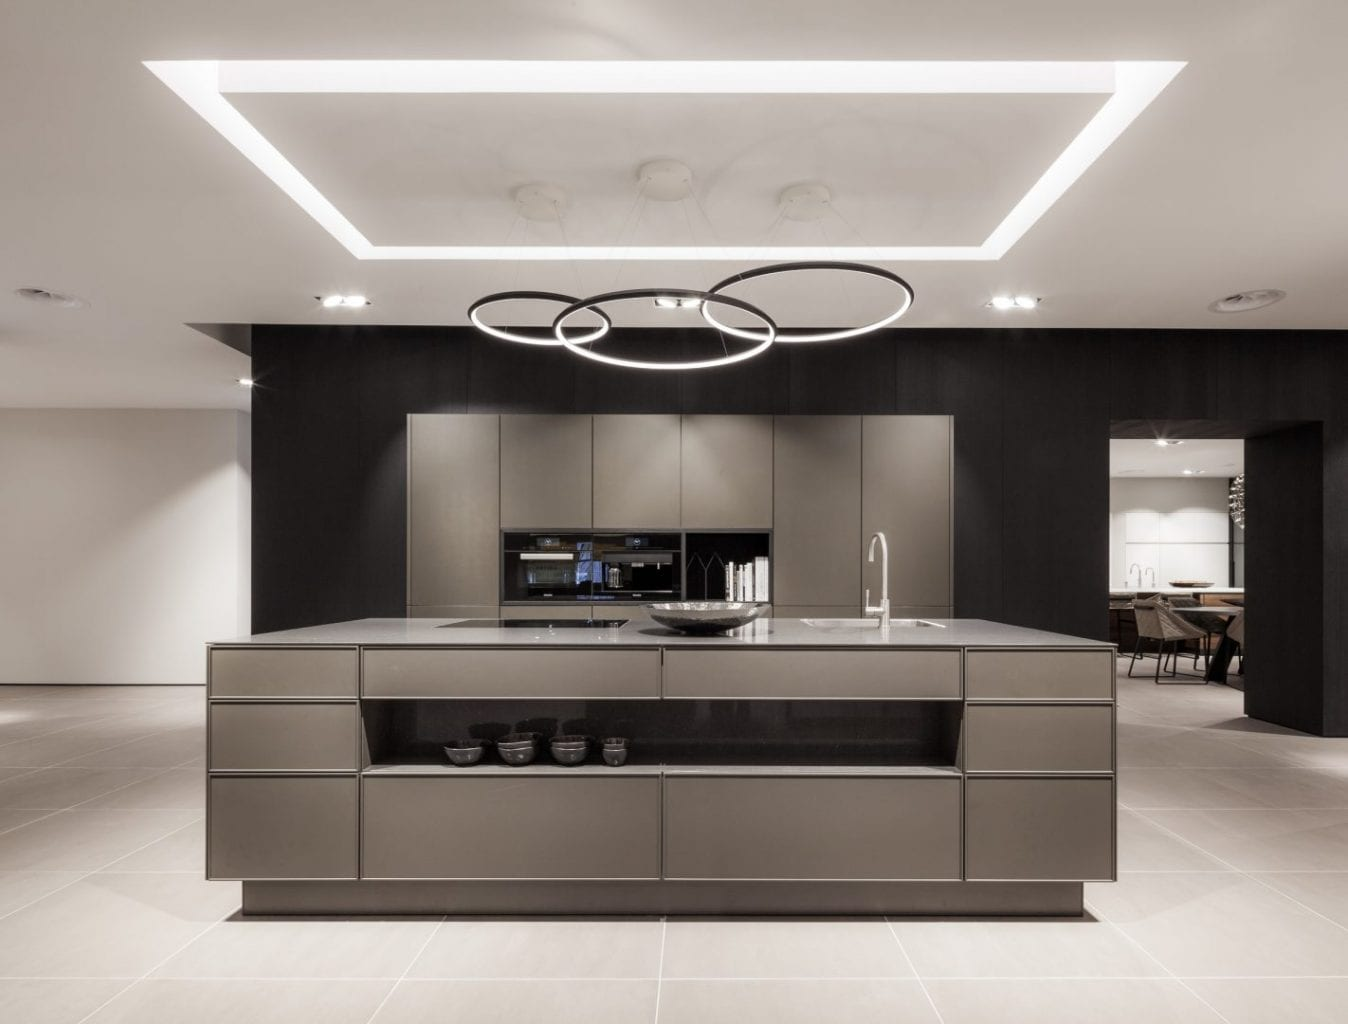 Siematic Showroomkeukens Siematic Pure Keuken S3 Goergen Keukens Uw Siematic Dealer